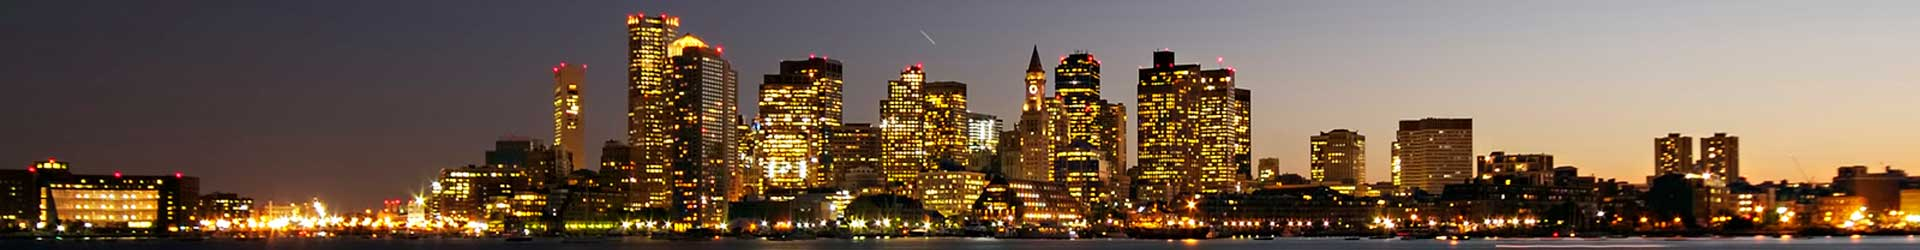 Boston skyline.  Linkwell Services for Boston area small and medium organizations